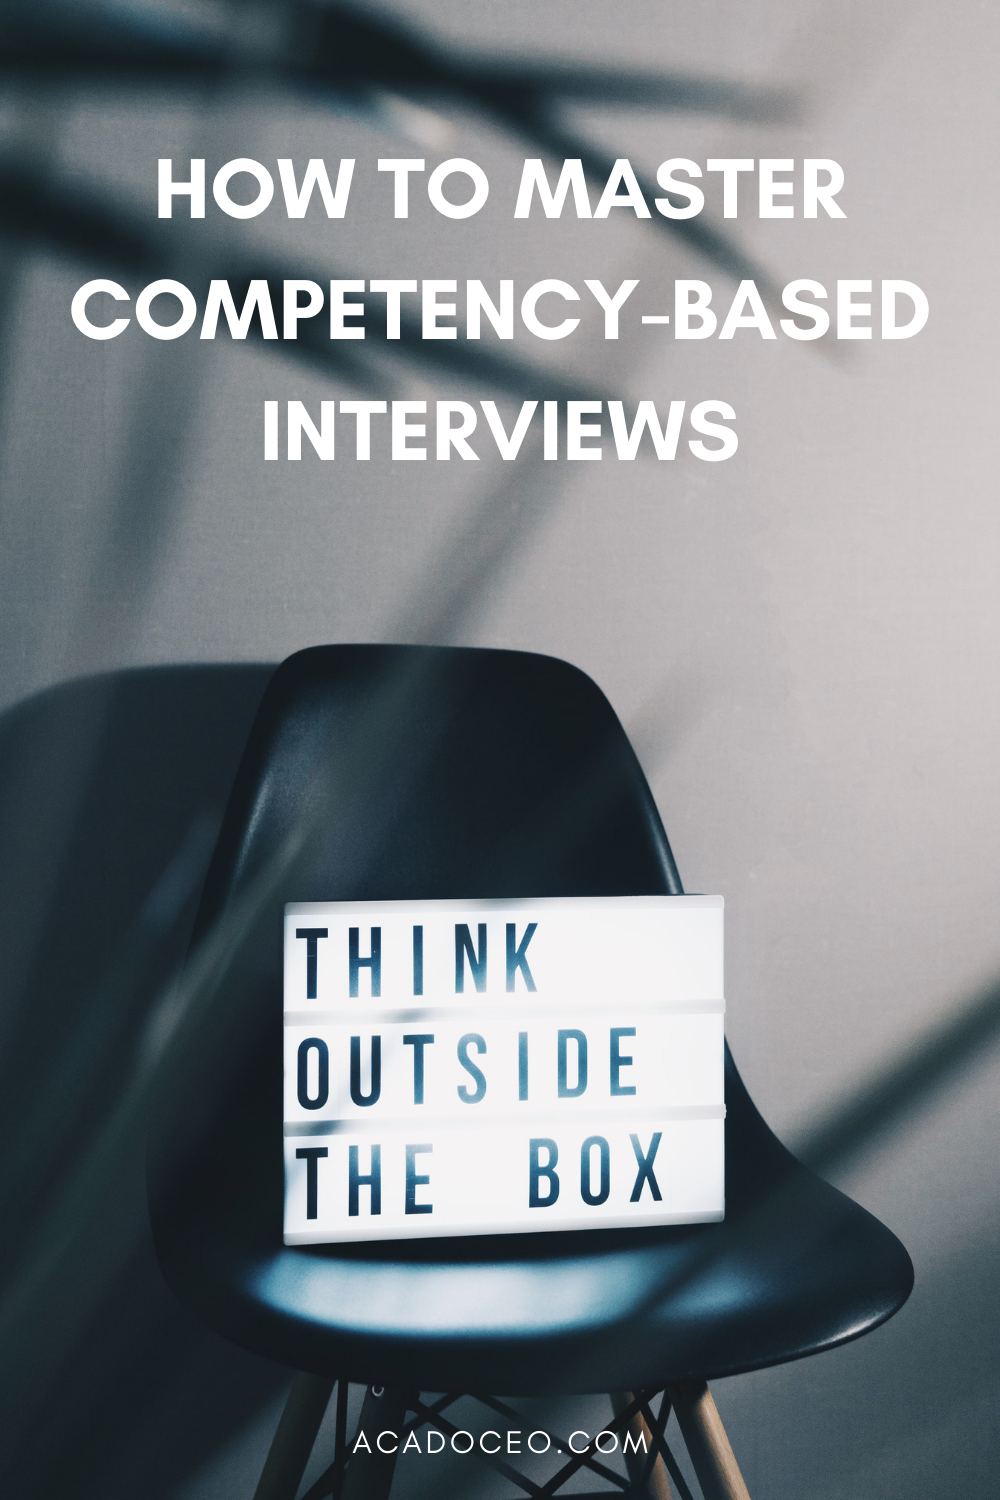 HOW TO MASTER COMPETENCY BASED INTERVIEWS